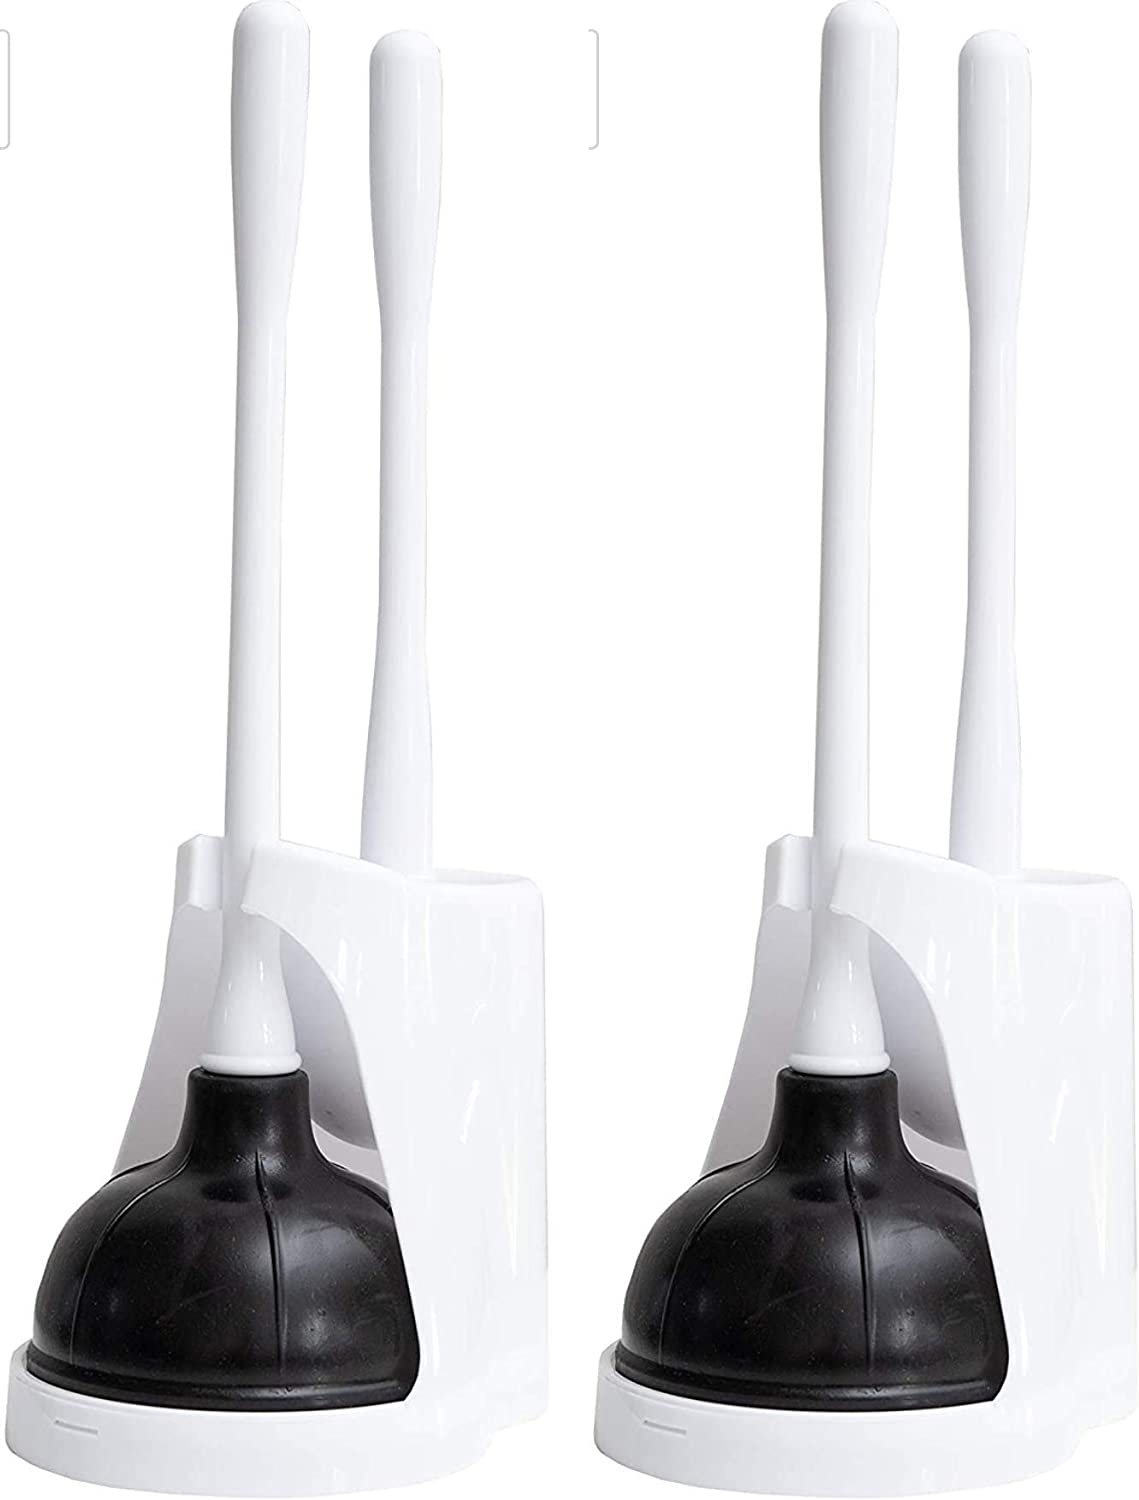 sale Klickpick Home Pack of 2 Plastic Cleaner P and Toilet Inventory cleanup selling sale Bowl Brush